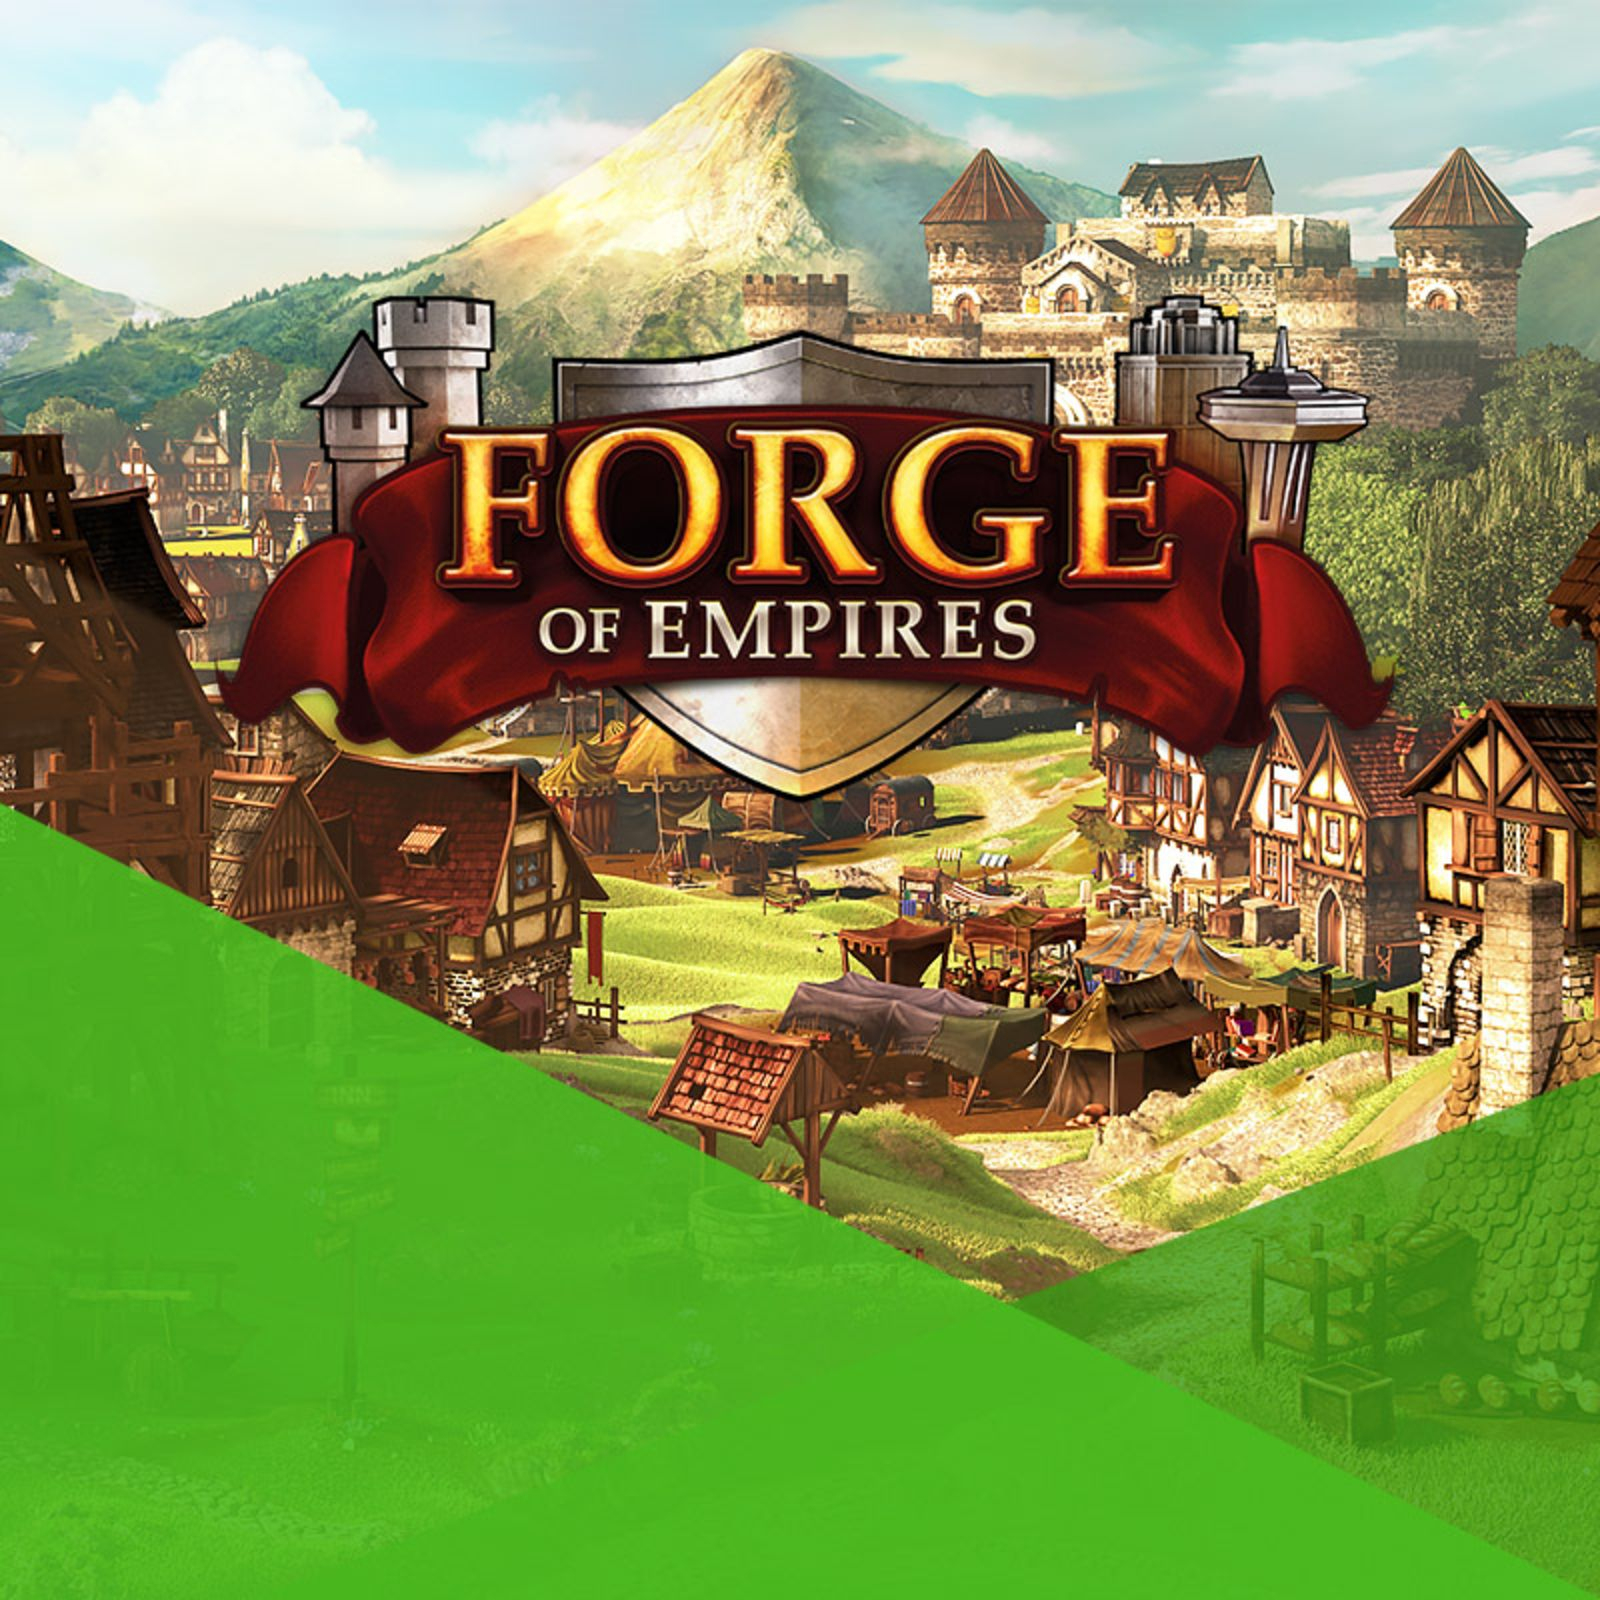 Free Online Games - Play Strategy Games And Rpg Online For Free! pour Jeux Gratuit De Village